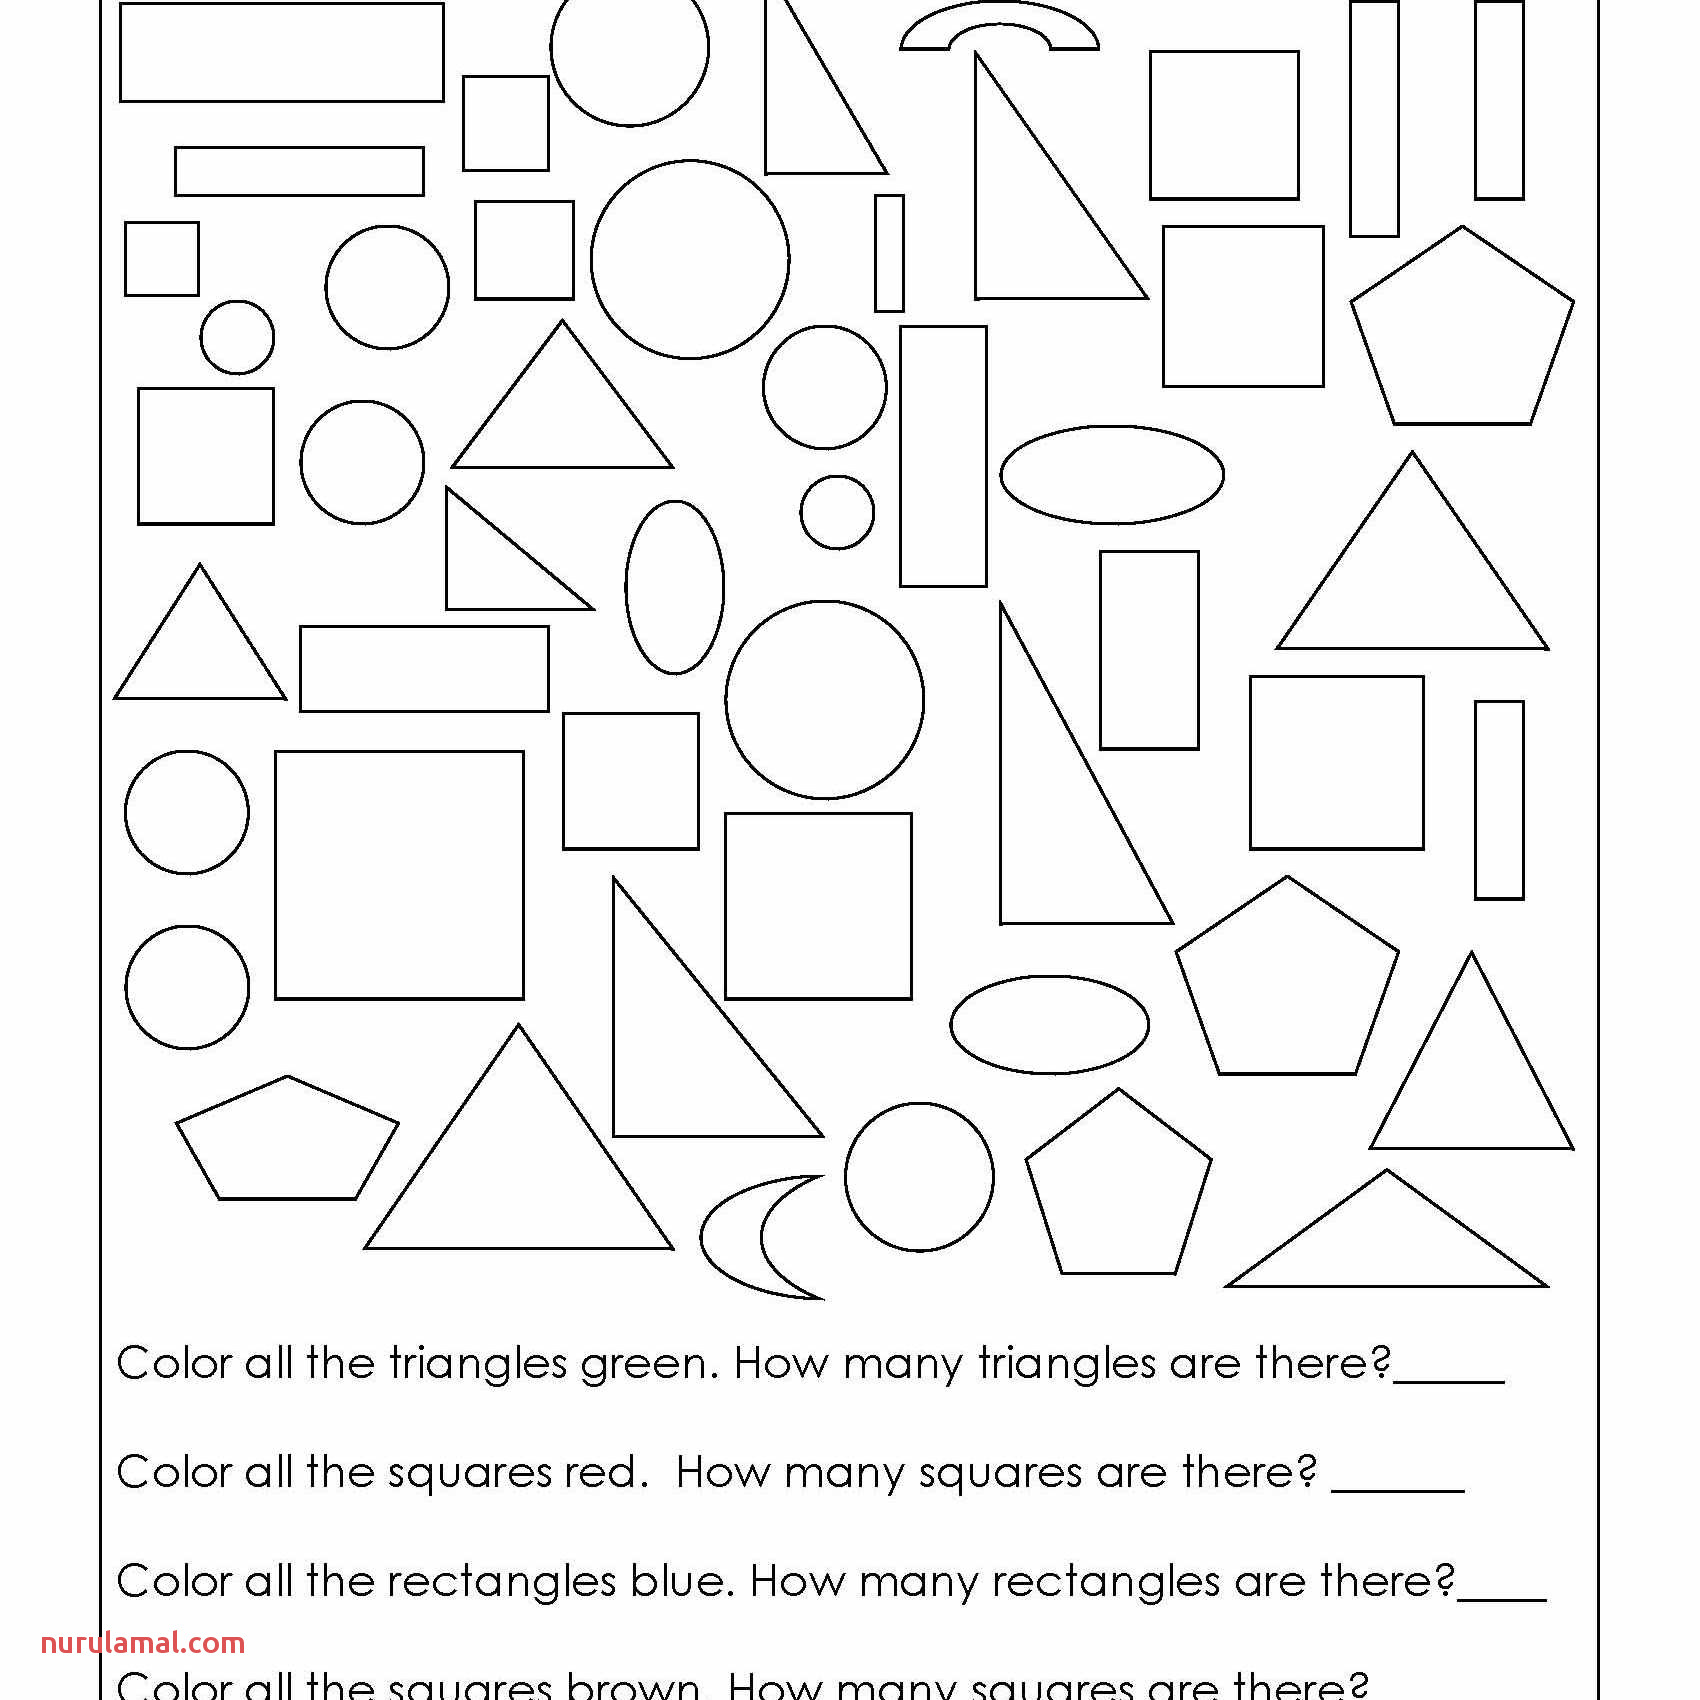 Free Printable Educational Worksheets Matching